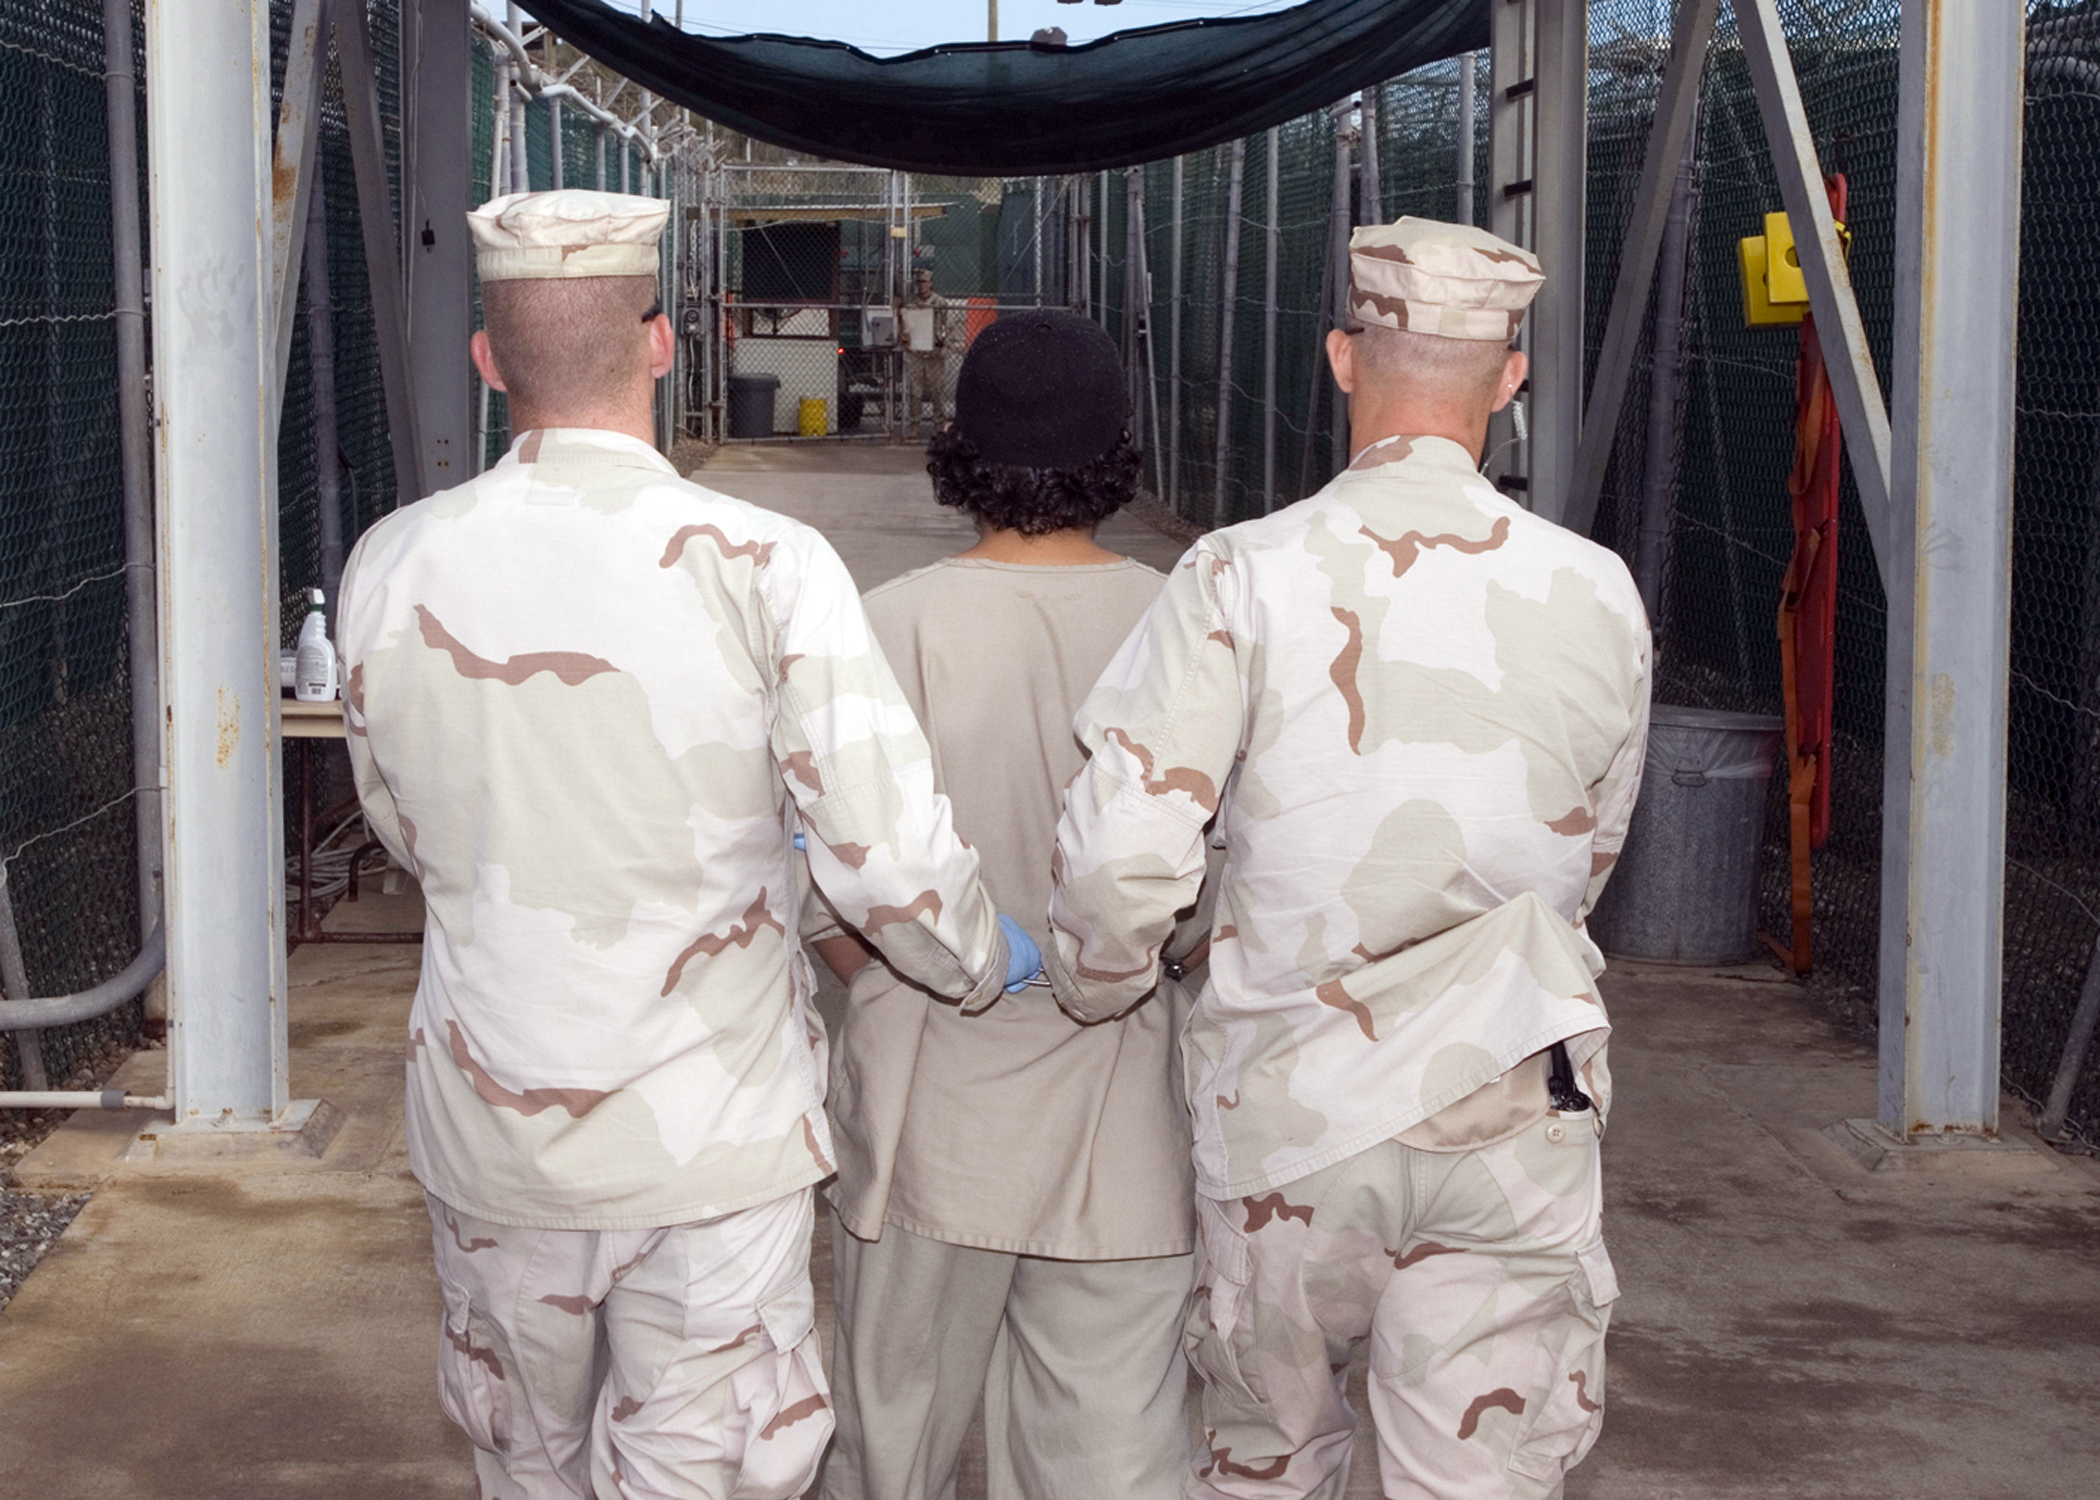 JTF Guard Force Troopers transport a detainee to the detainee hospital located adjacent to Camp Four, Dec. 27, 2007. The U.S. government?s program to transfer and release detainees is unprecedented during a time of war. JTF Guantanamo conducts safe and humane care and custody of detained enemy combatants. The JTF conducts interrogation operations to collect strategic intelligence in support of the Global War on Terror and supports law enforcement and war crimes investigations. JTF Guantanamo is committed to the safety and security of American service members and civilians working inside its detention facilities. (JTF Guantanamo photo by Navy Petty Officer 1st Class Michael Billings) UNCLASSIFIED. Cleared for public release. For additional information contact JTF Guantanamo PAO 011-5399-3596; DSN 660-3596.